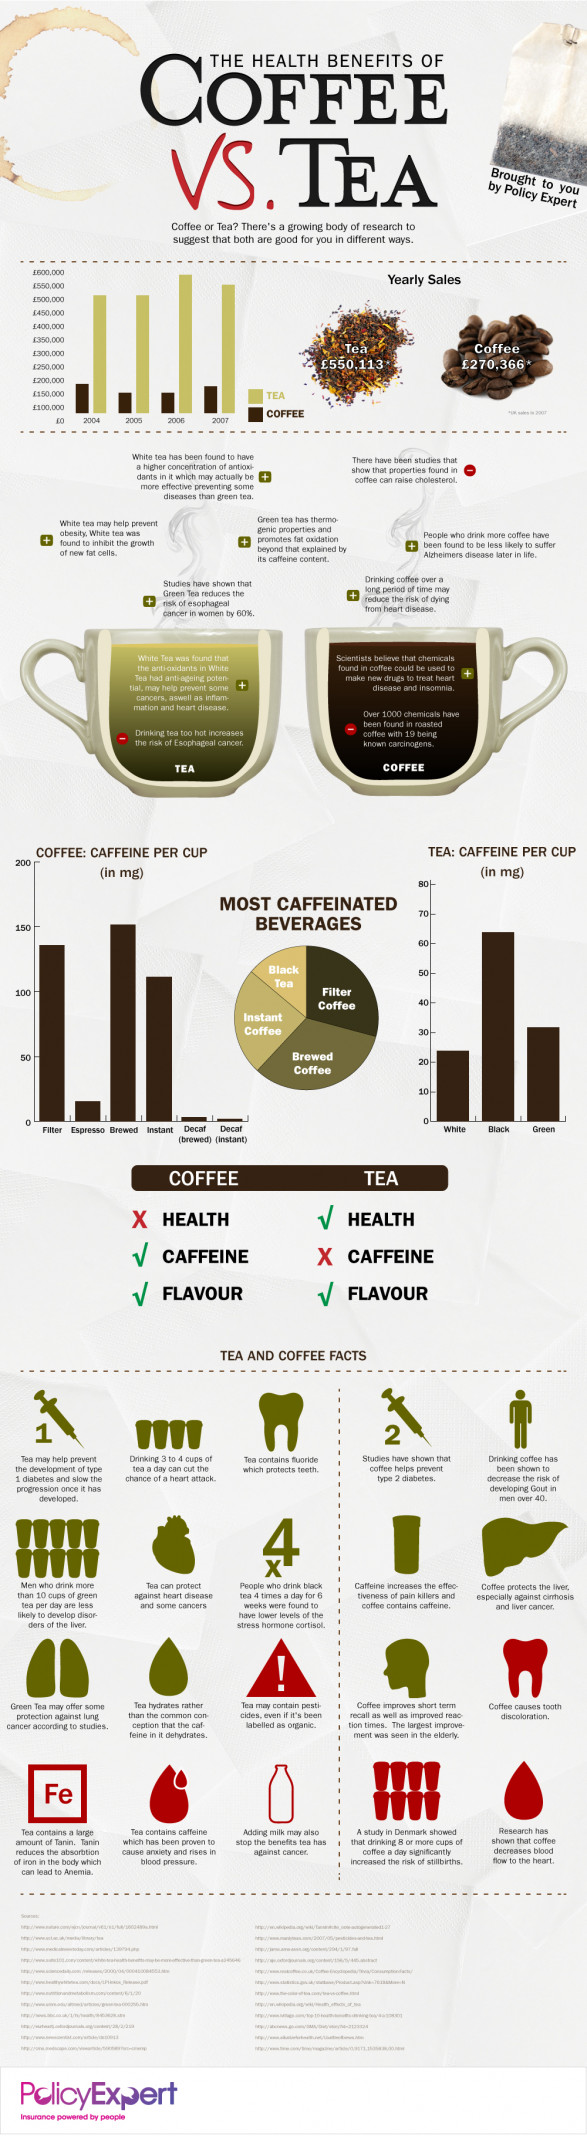 The Health Benefits of Coffee vs Tea